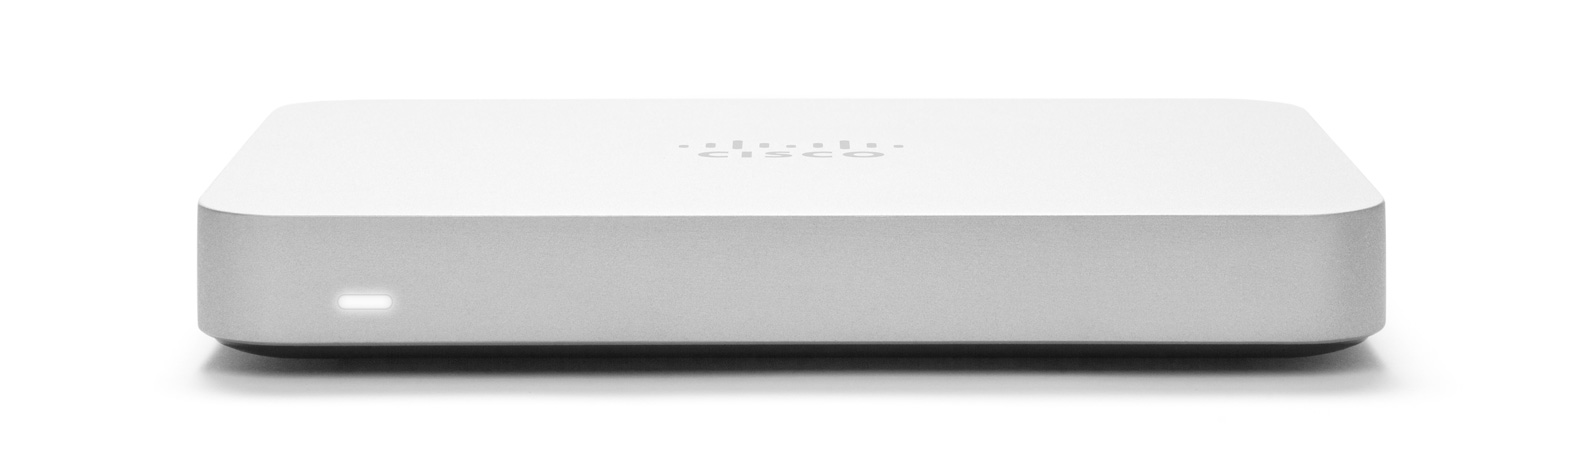 Meraki MX Firewalls: Why cloud managed networking simply